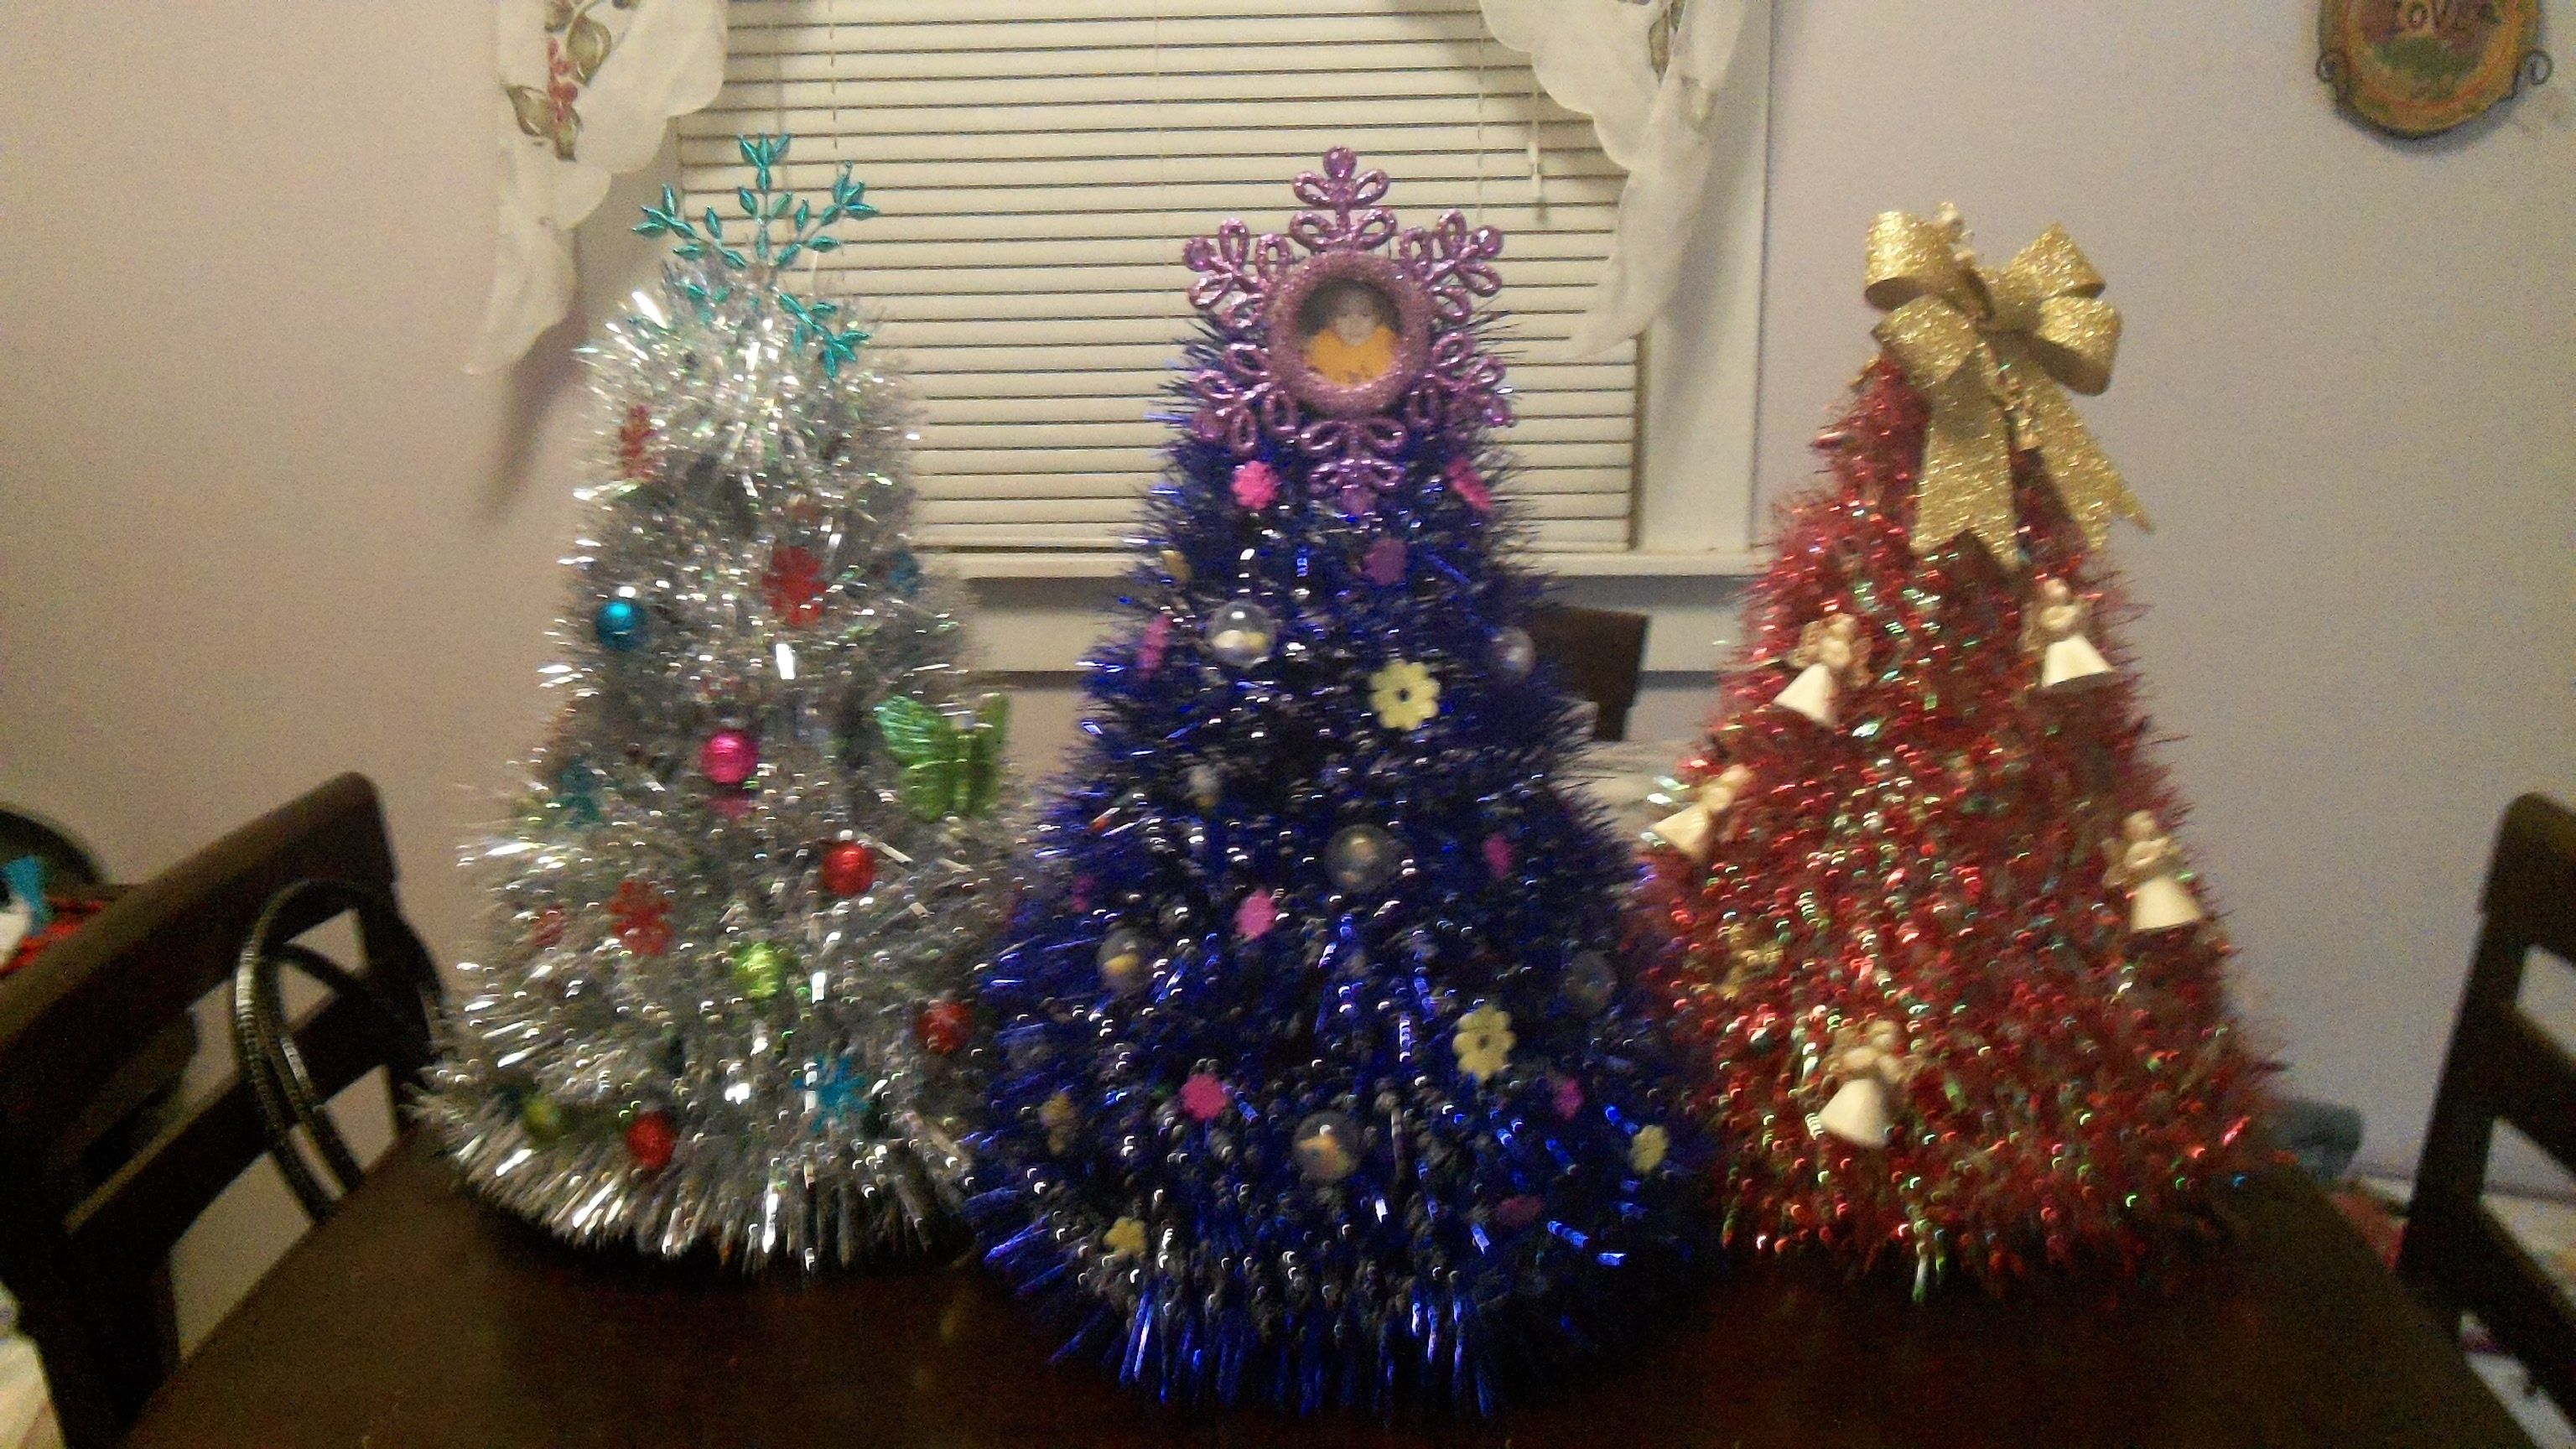 Table Top Christmas Trees Made From Wire Clothes Hangers